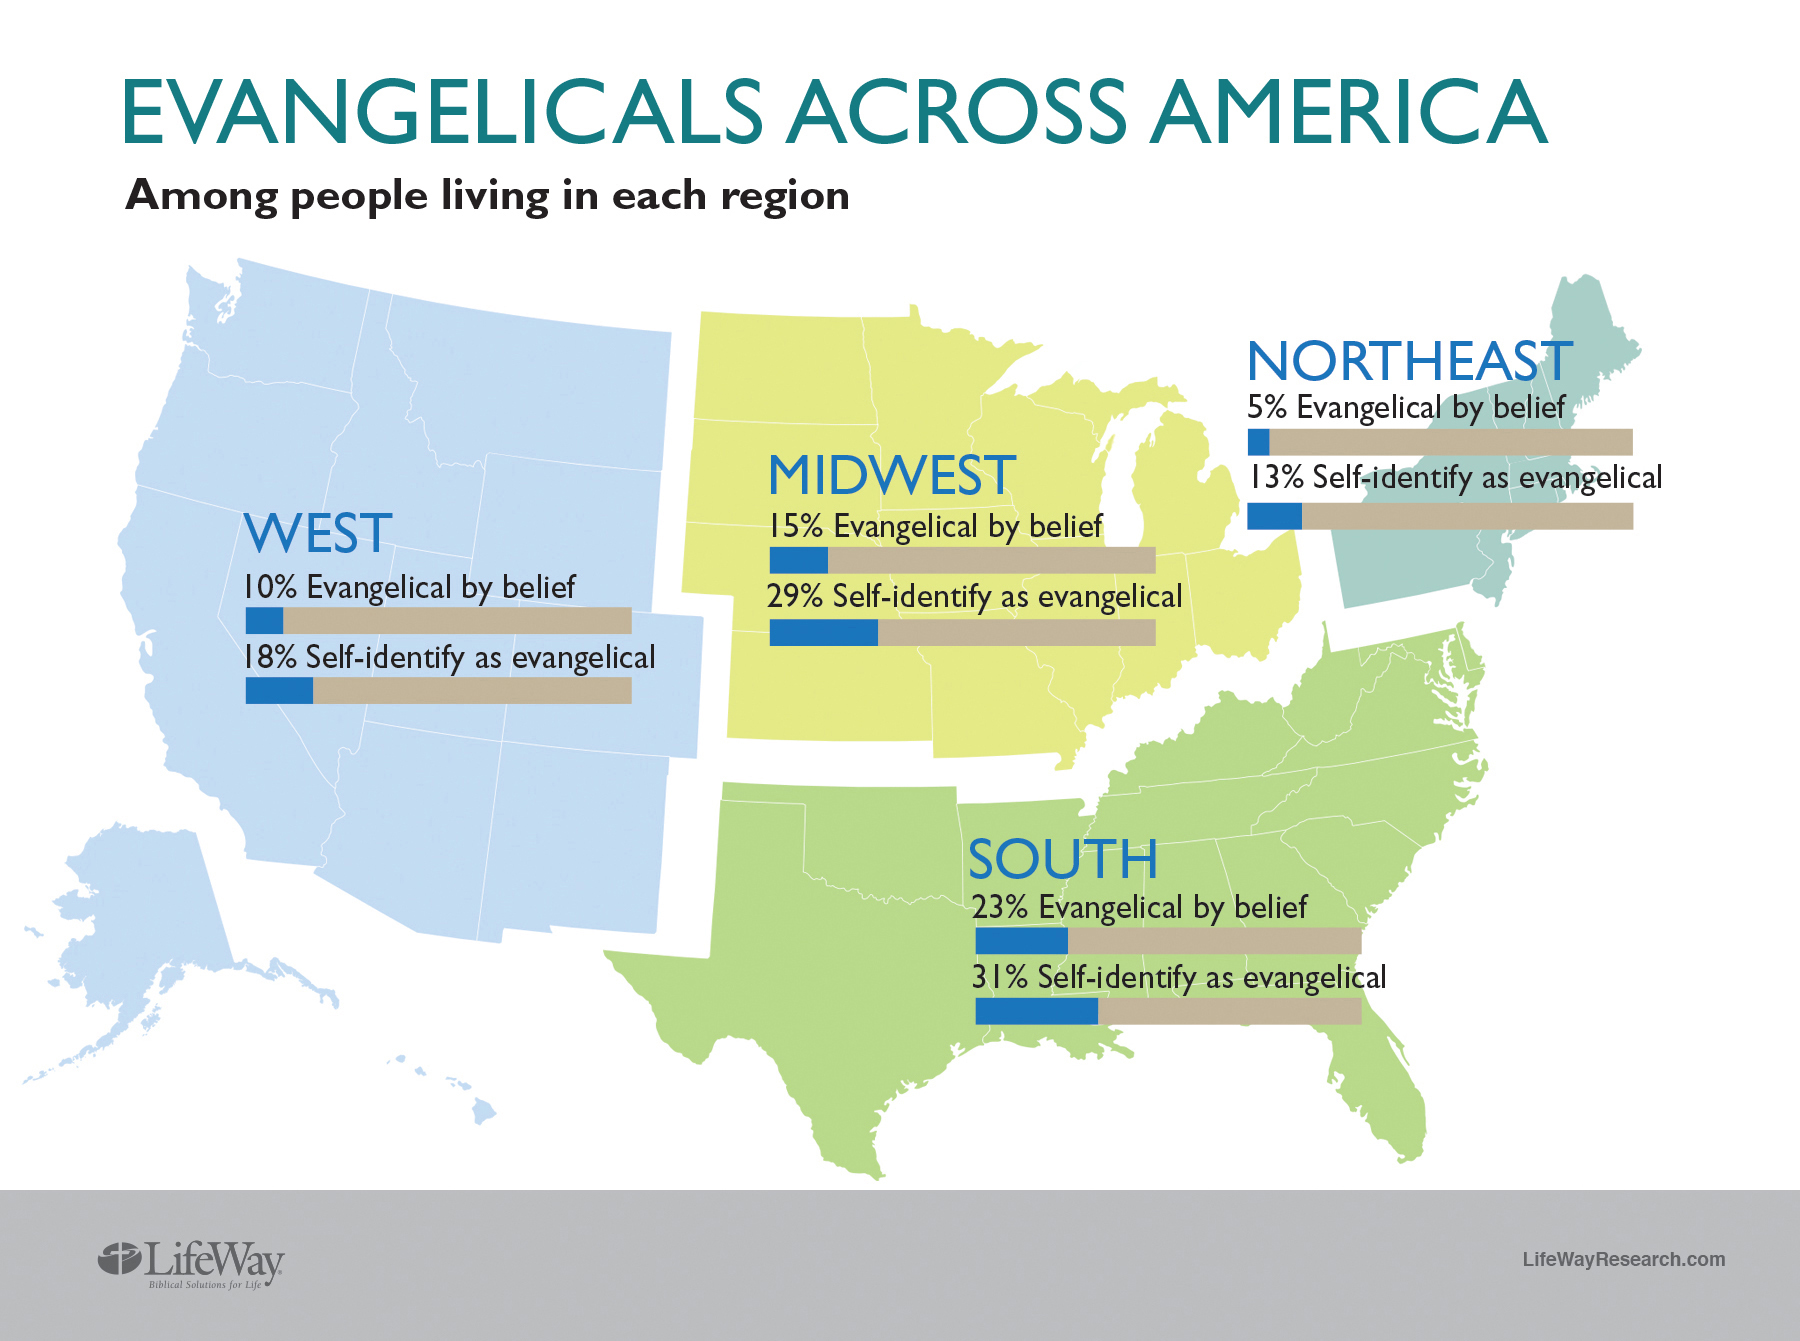 BP Evangelicals across America